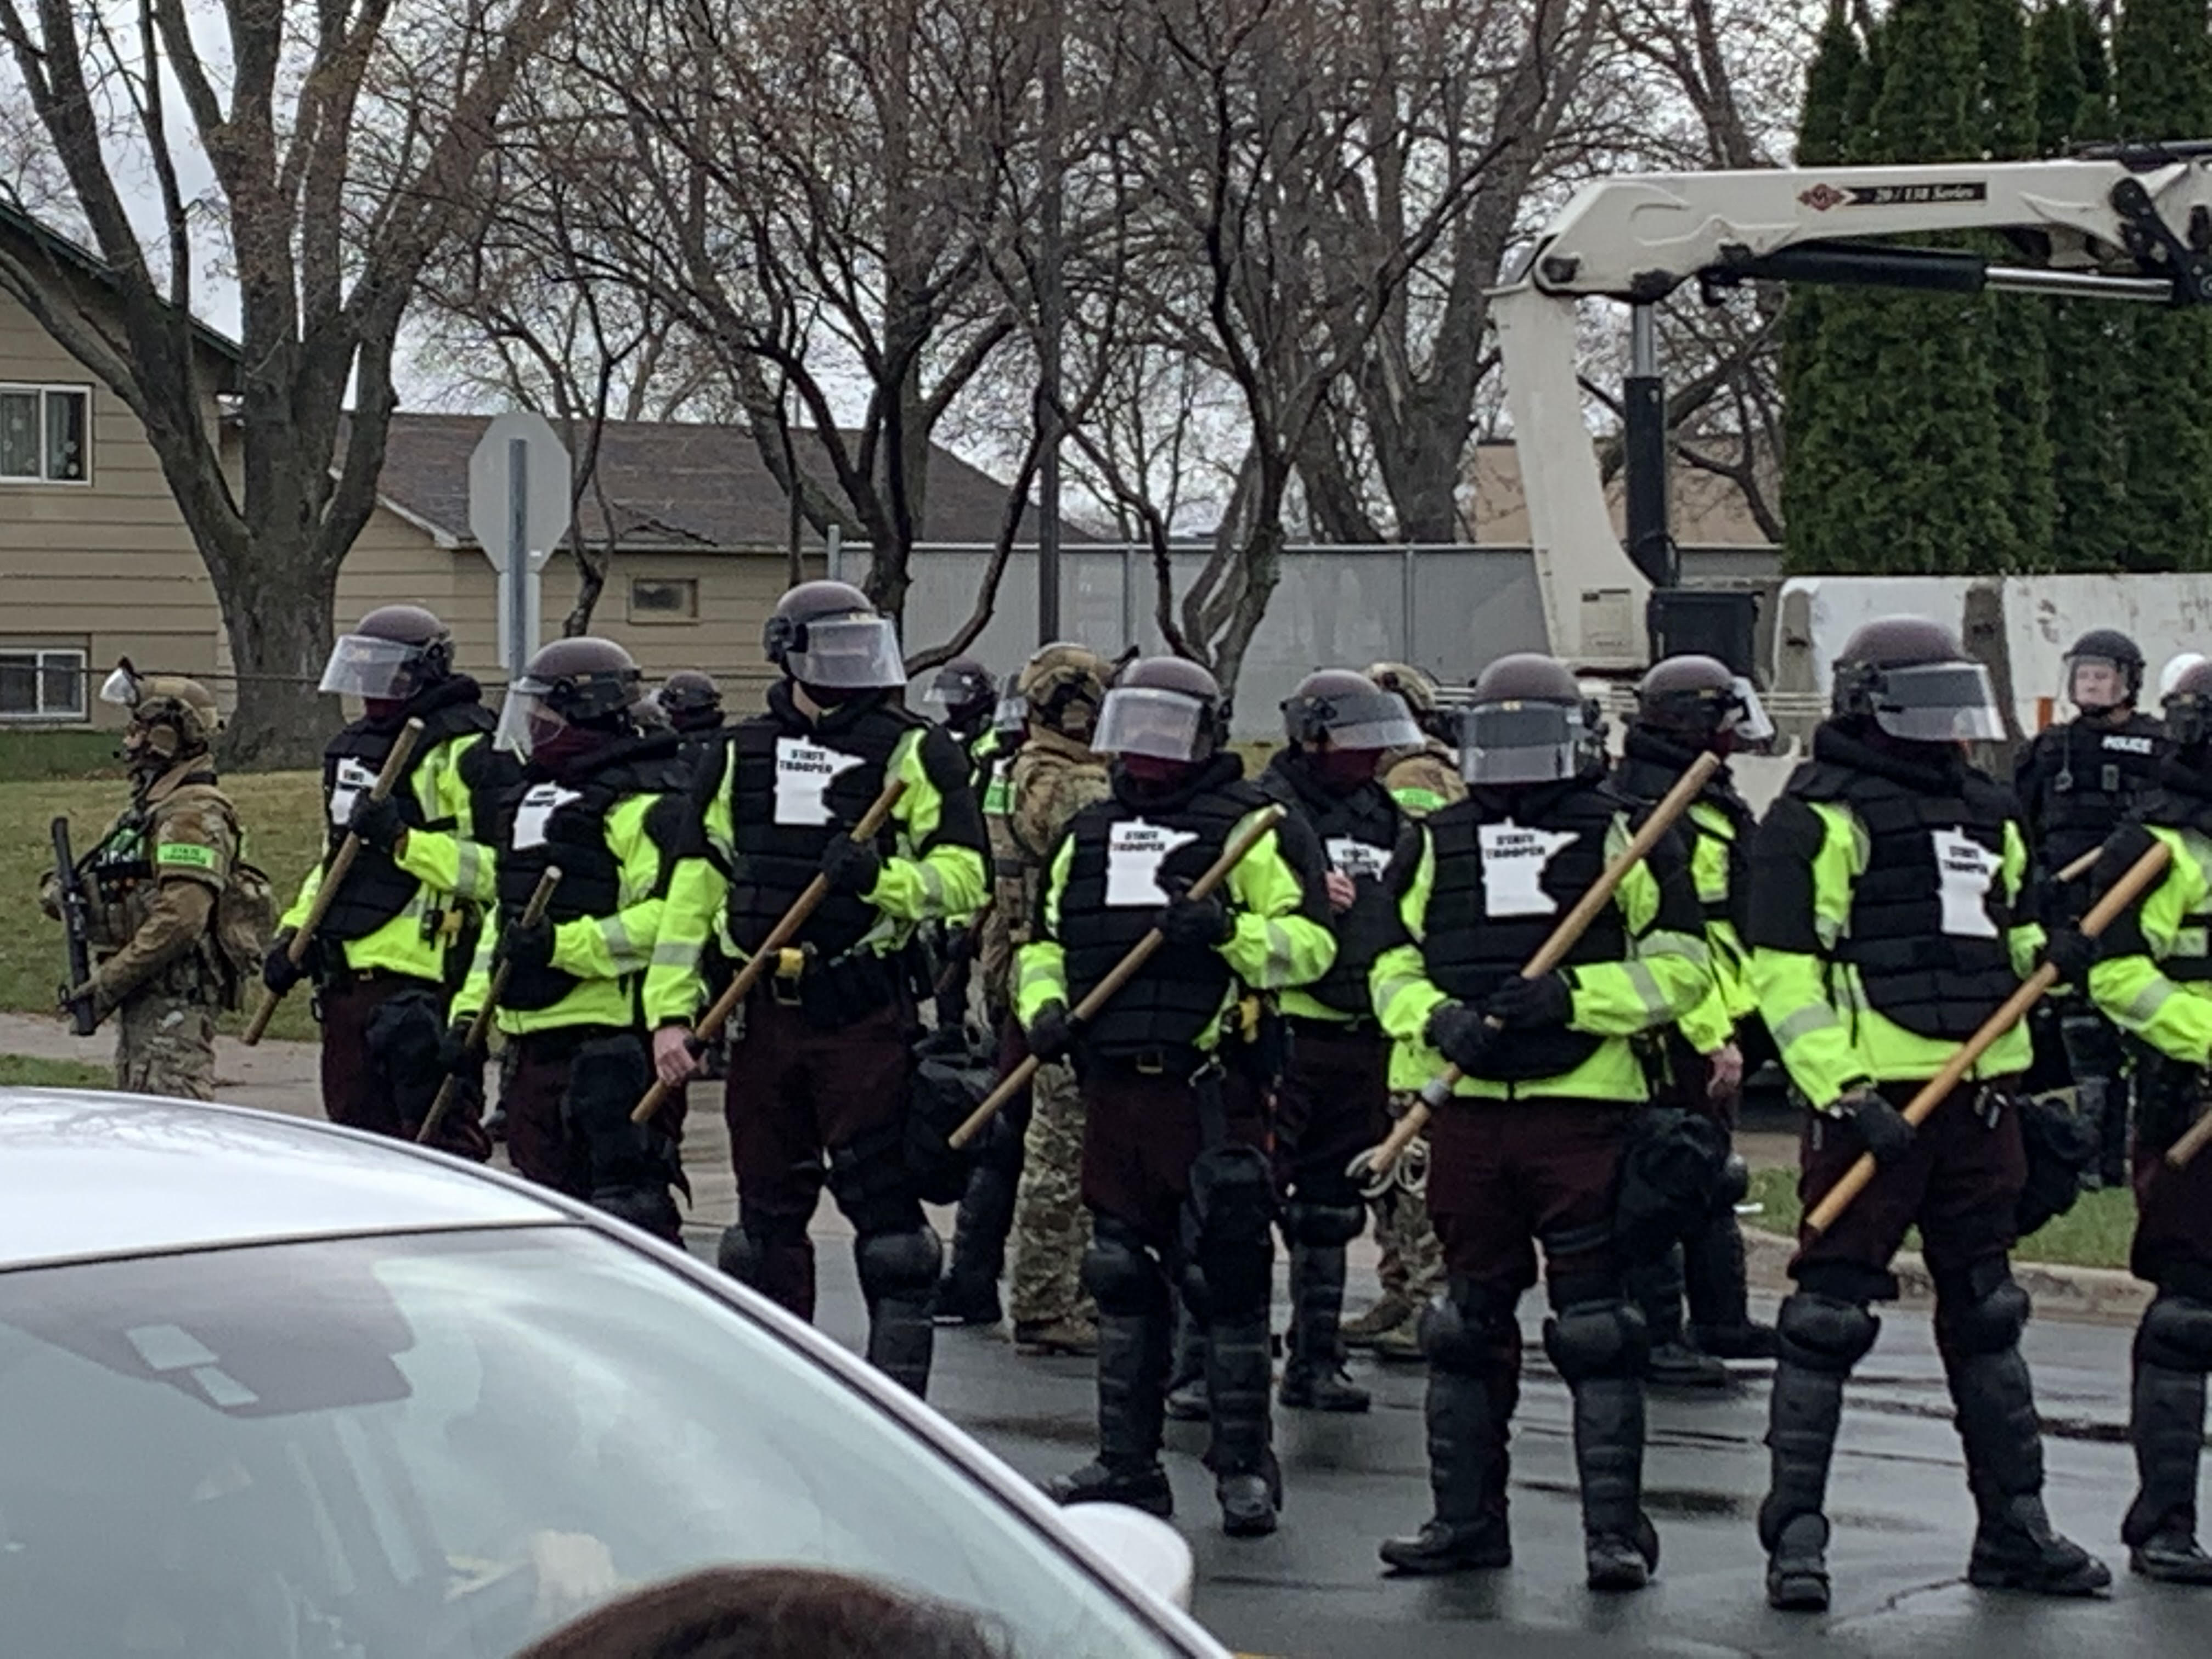 Minnesota state troopers deployed to Brooklyn Center, Minn. on April 12